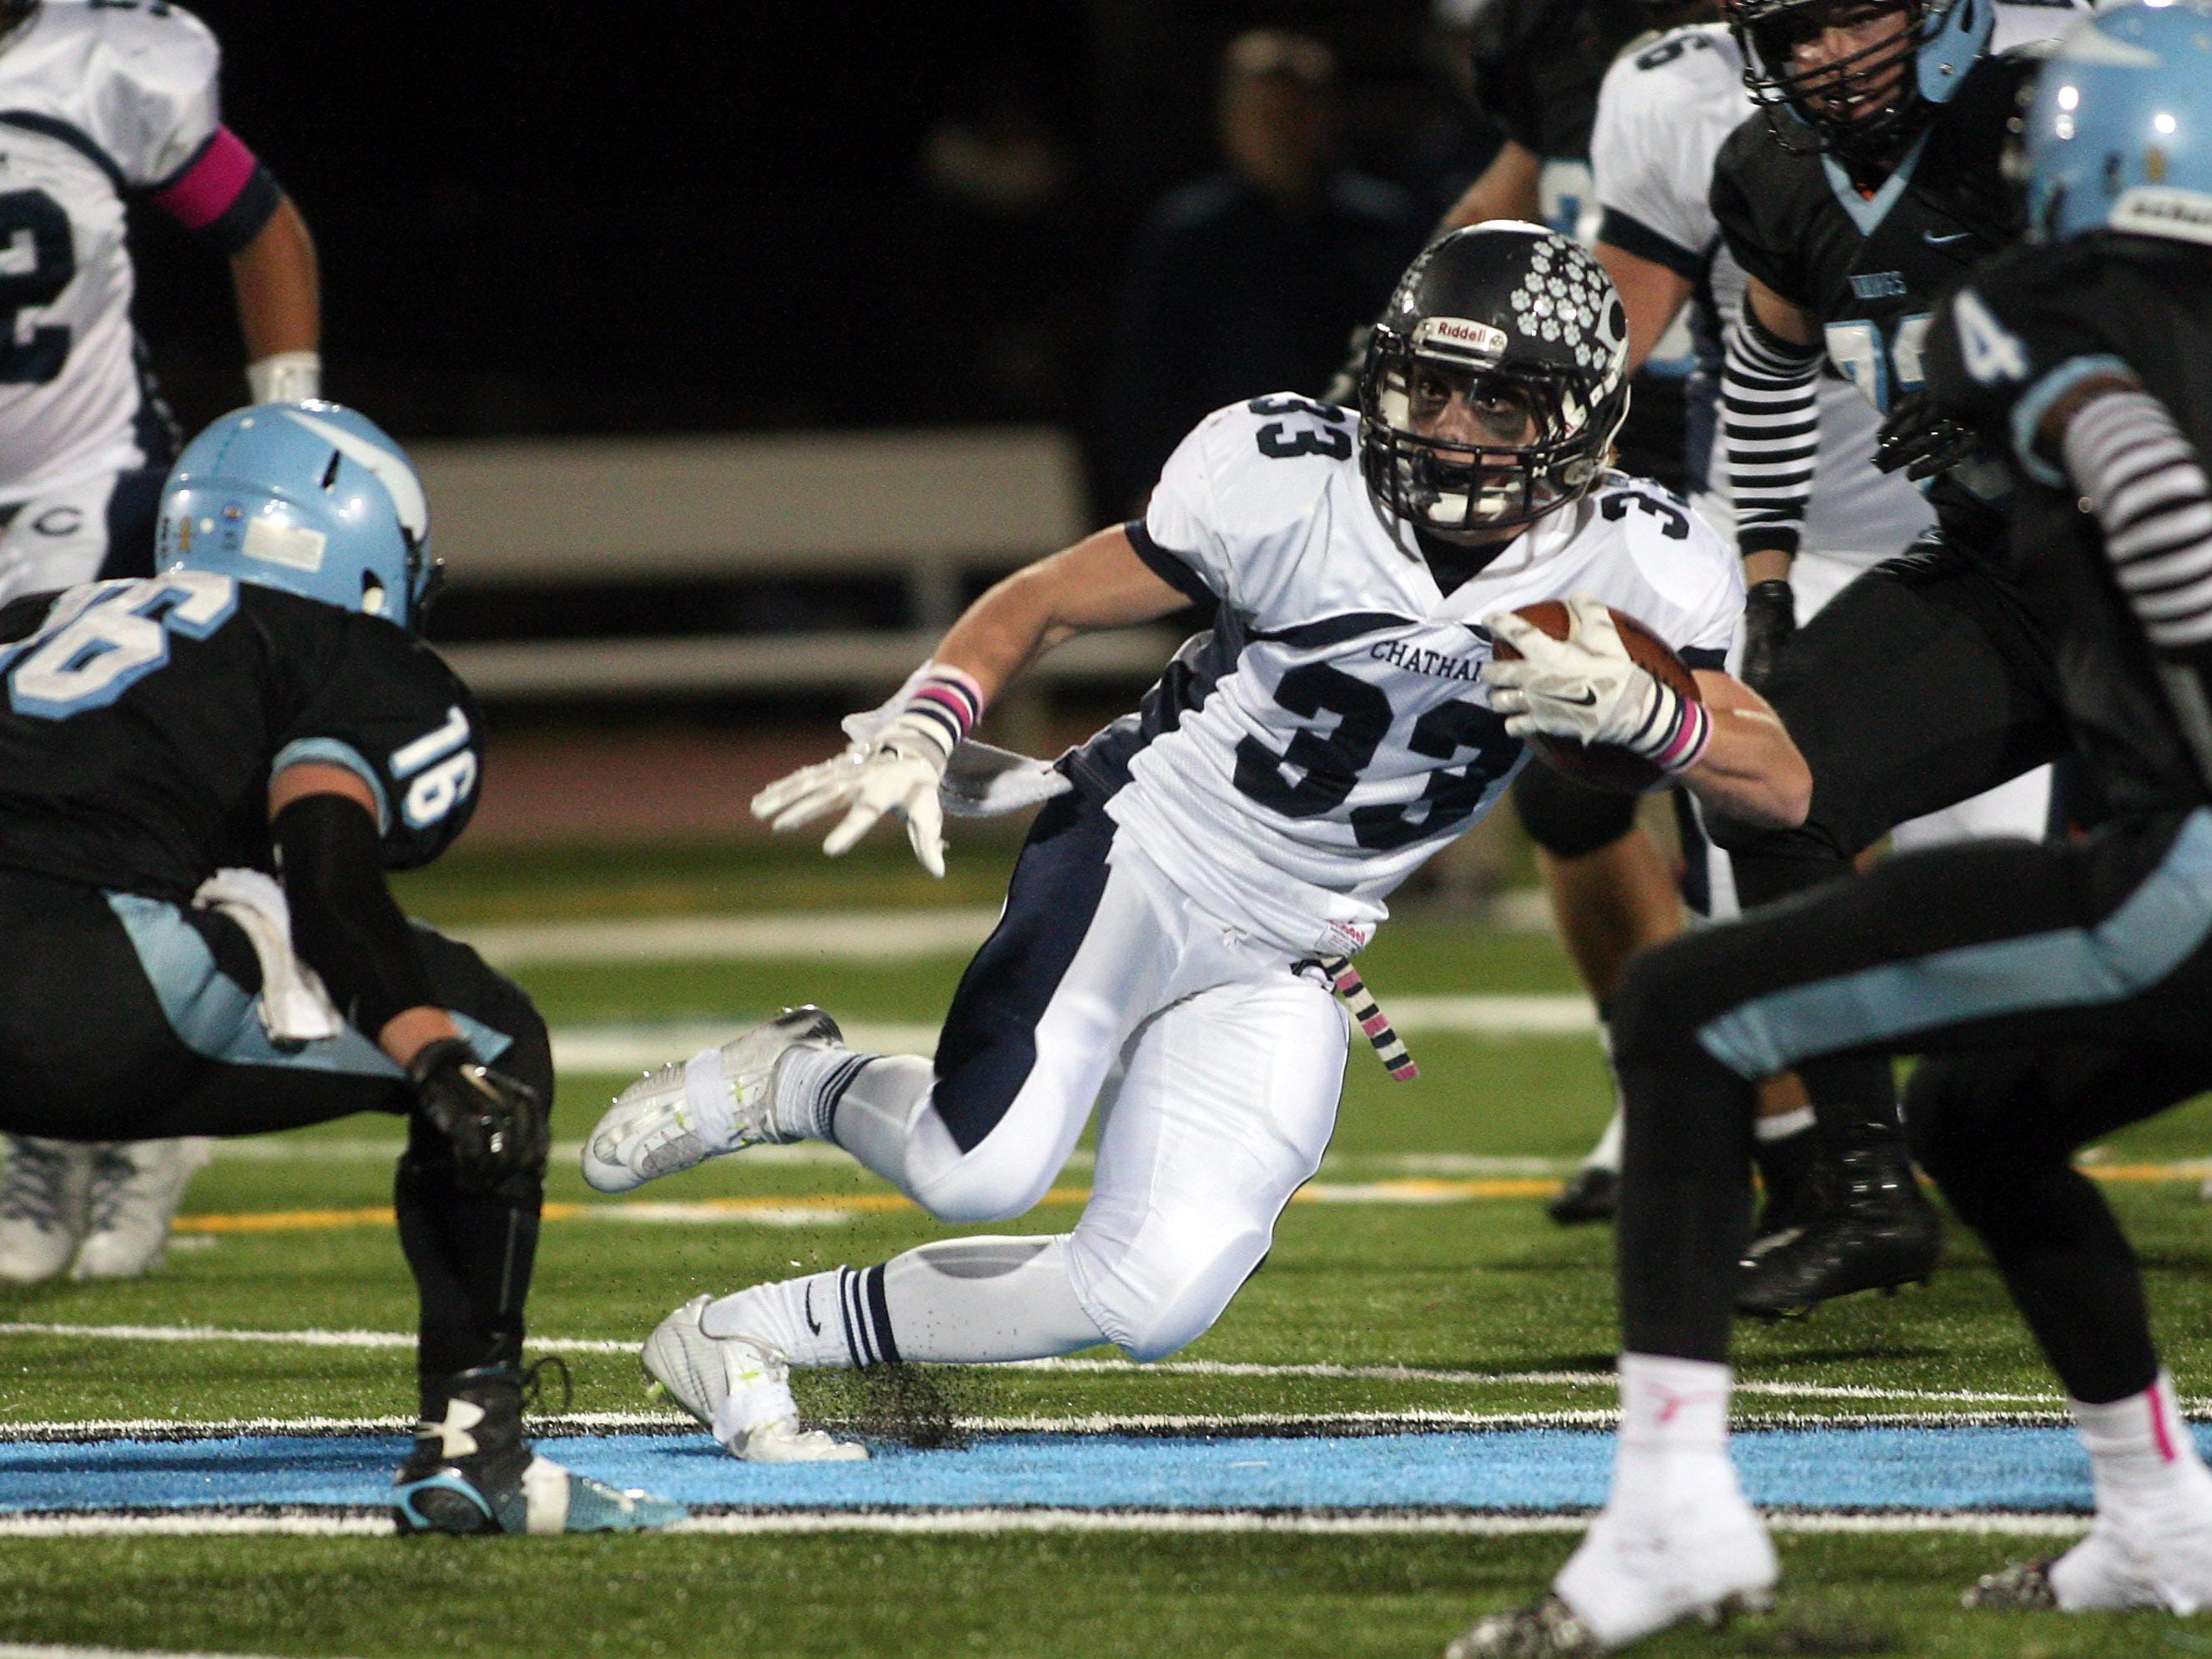 Chatham running backJustin Hayes gains yardage vs defending sectional champion Parsippany Hills in a showdown with playoff implications. October 30, 2015, Parsippany, NJ.